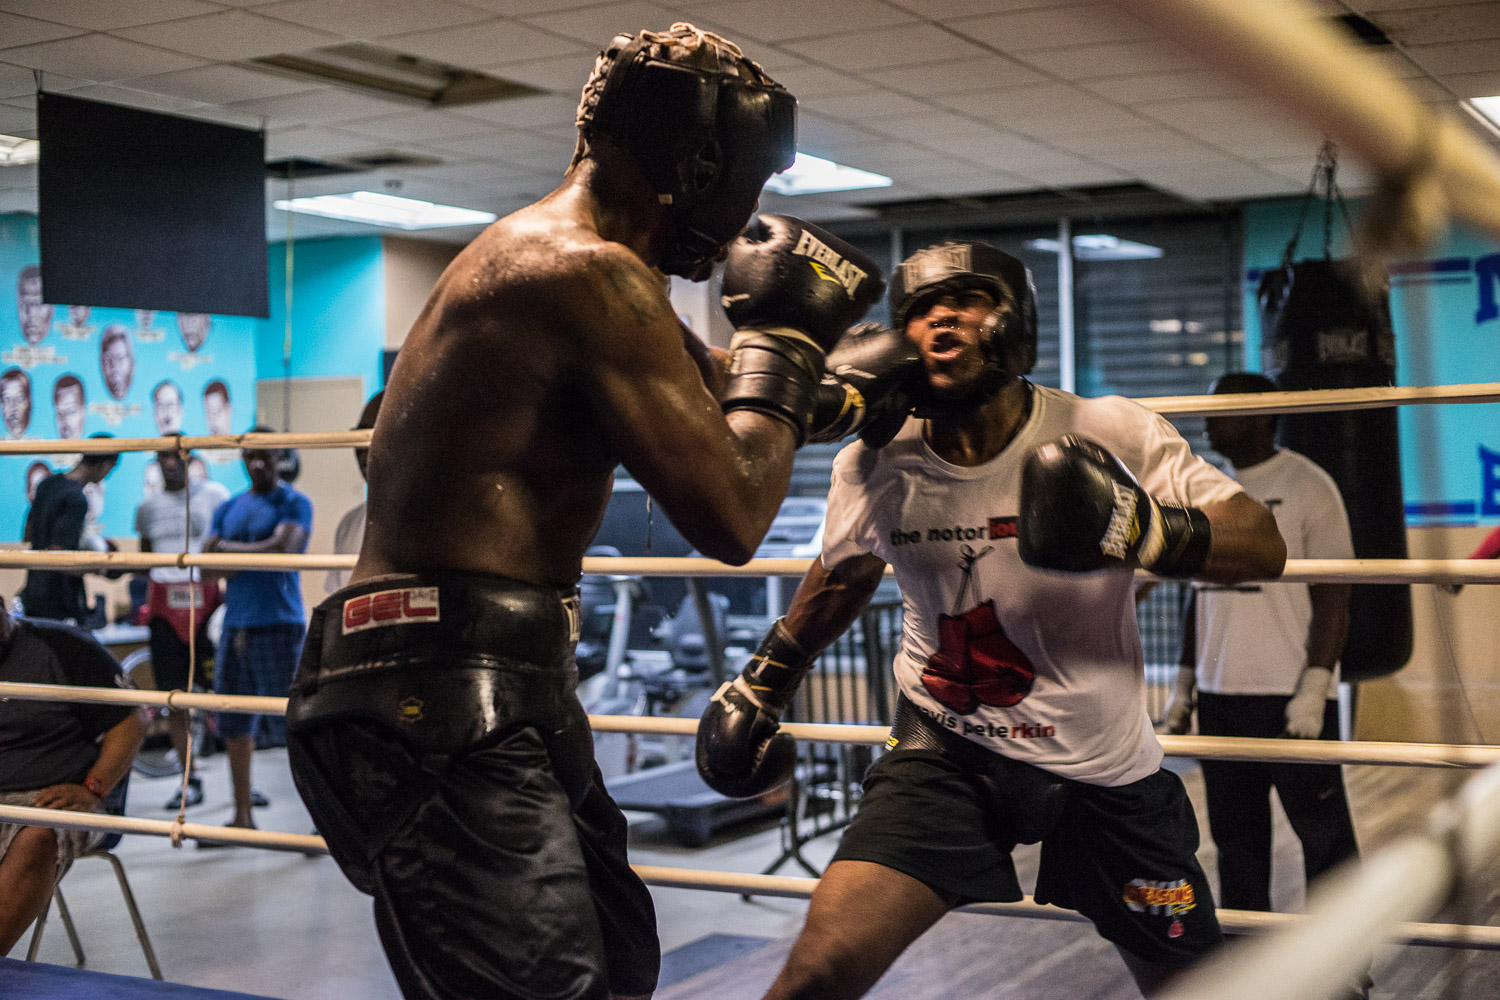 """""""We all family here"""", says Nate Boyd. Peoples' reasons for boxing vary widely. One thread that keeps people coming back is the camaraderie, welcoming atmosphere and discipline boxing gives its practitioners."""